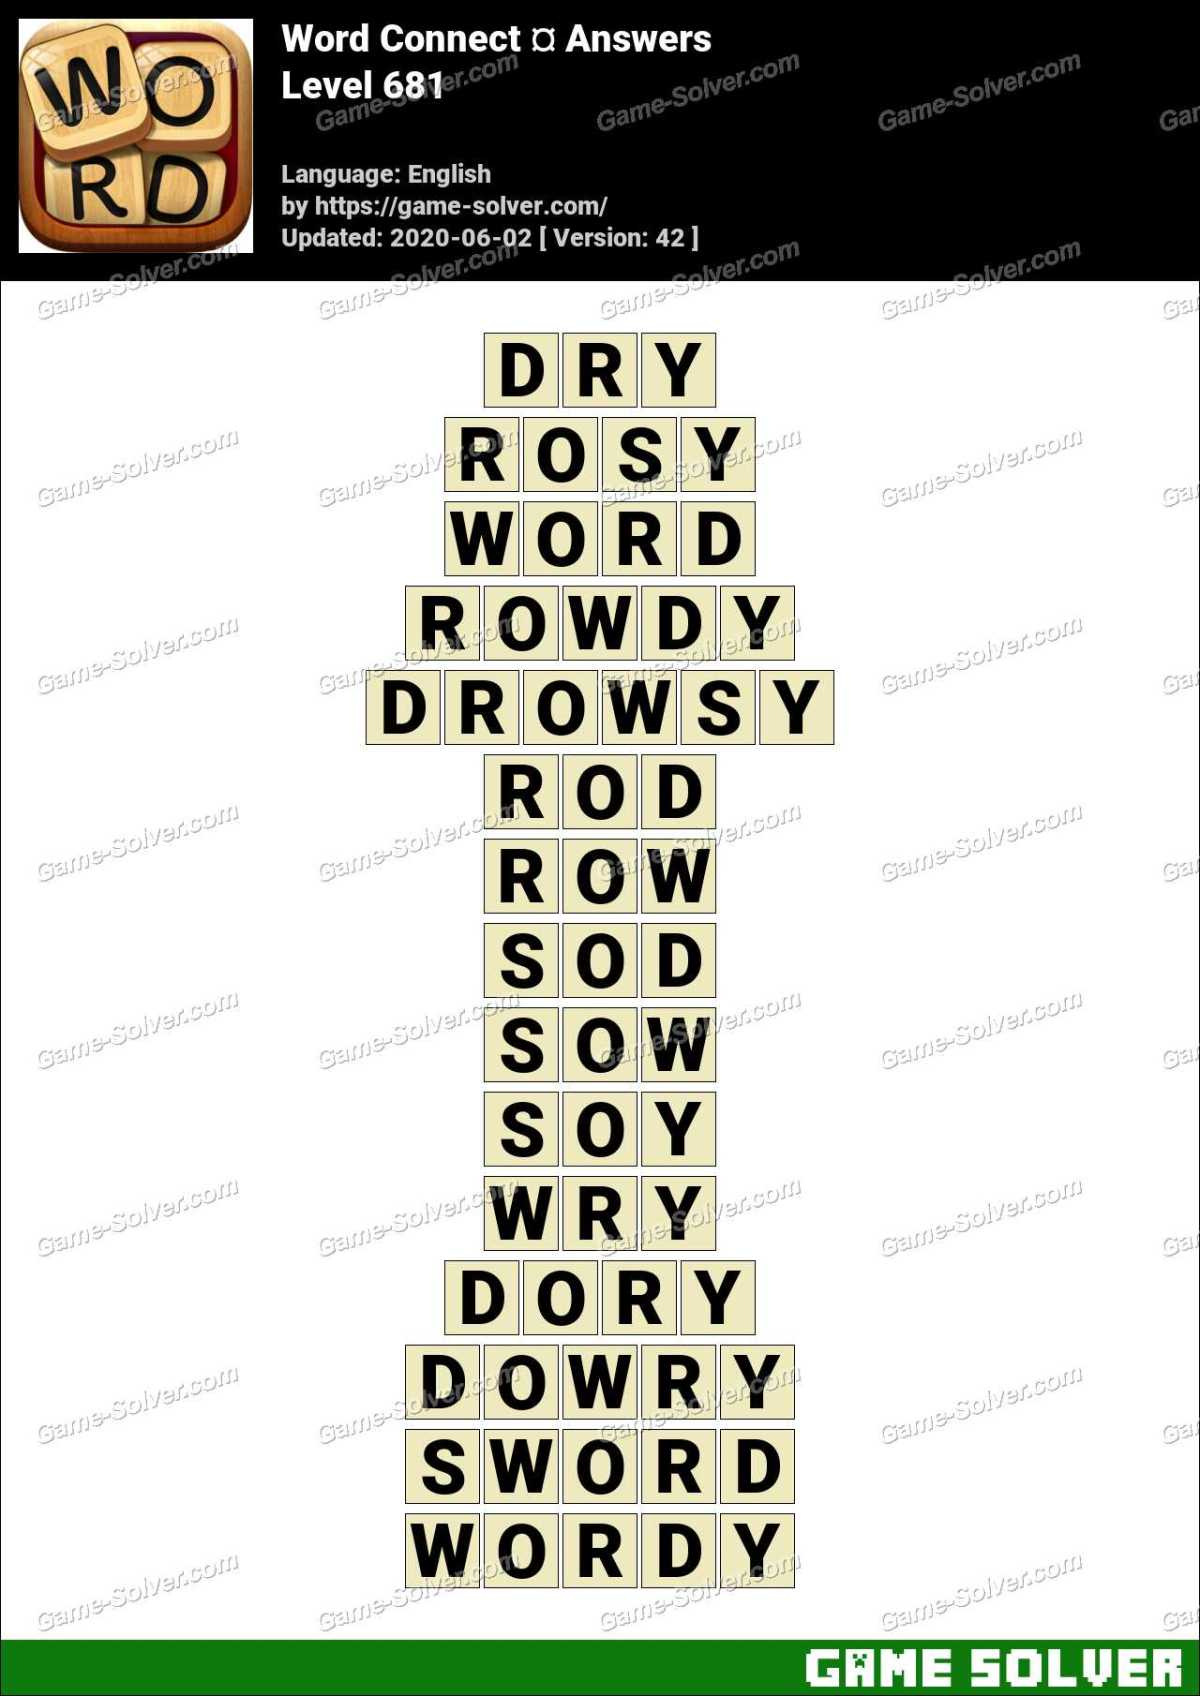 Word Connect Level 681 Answers